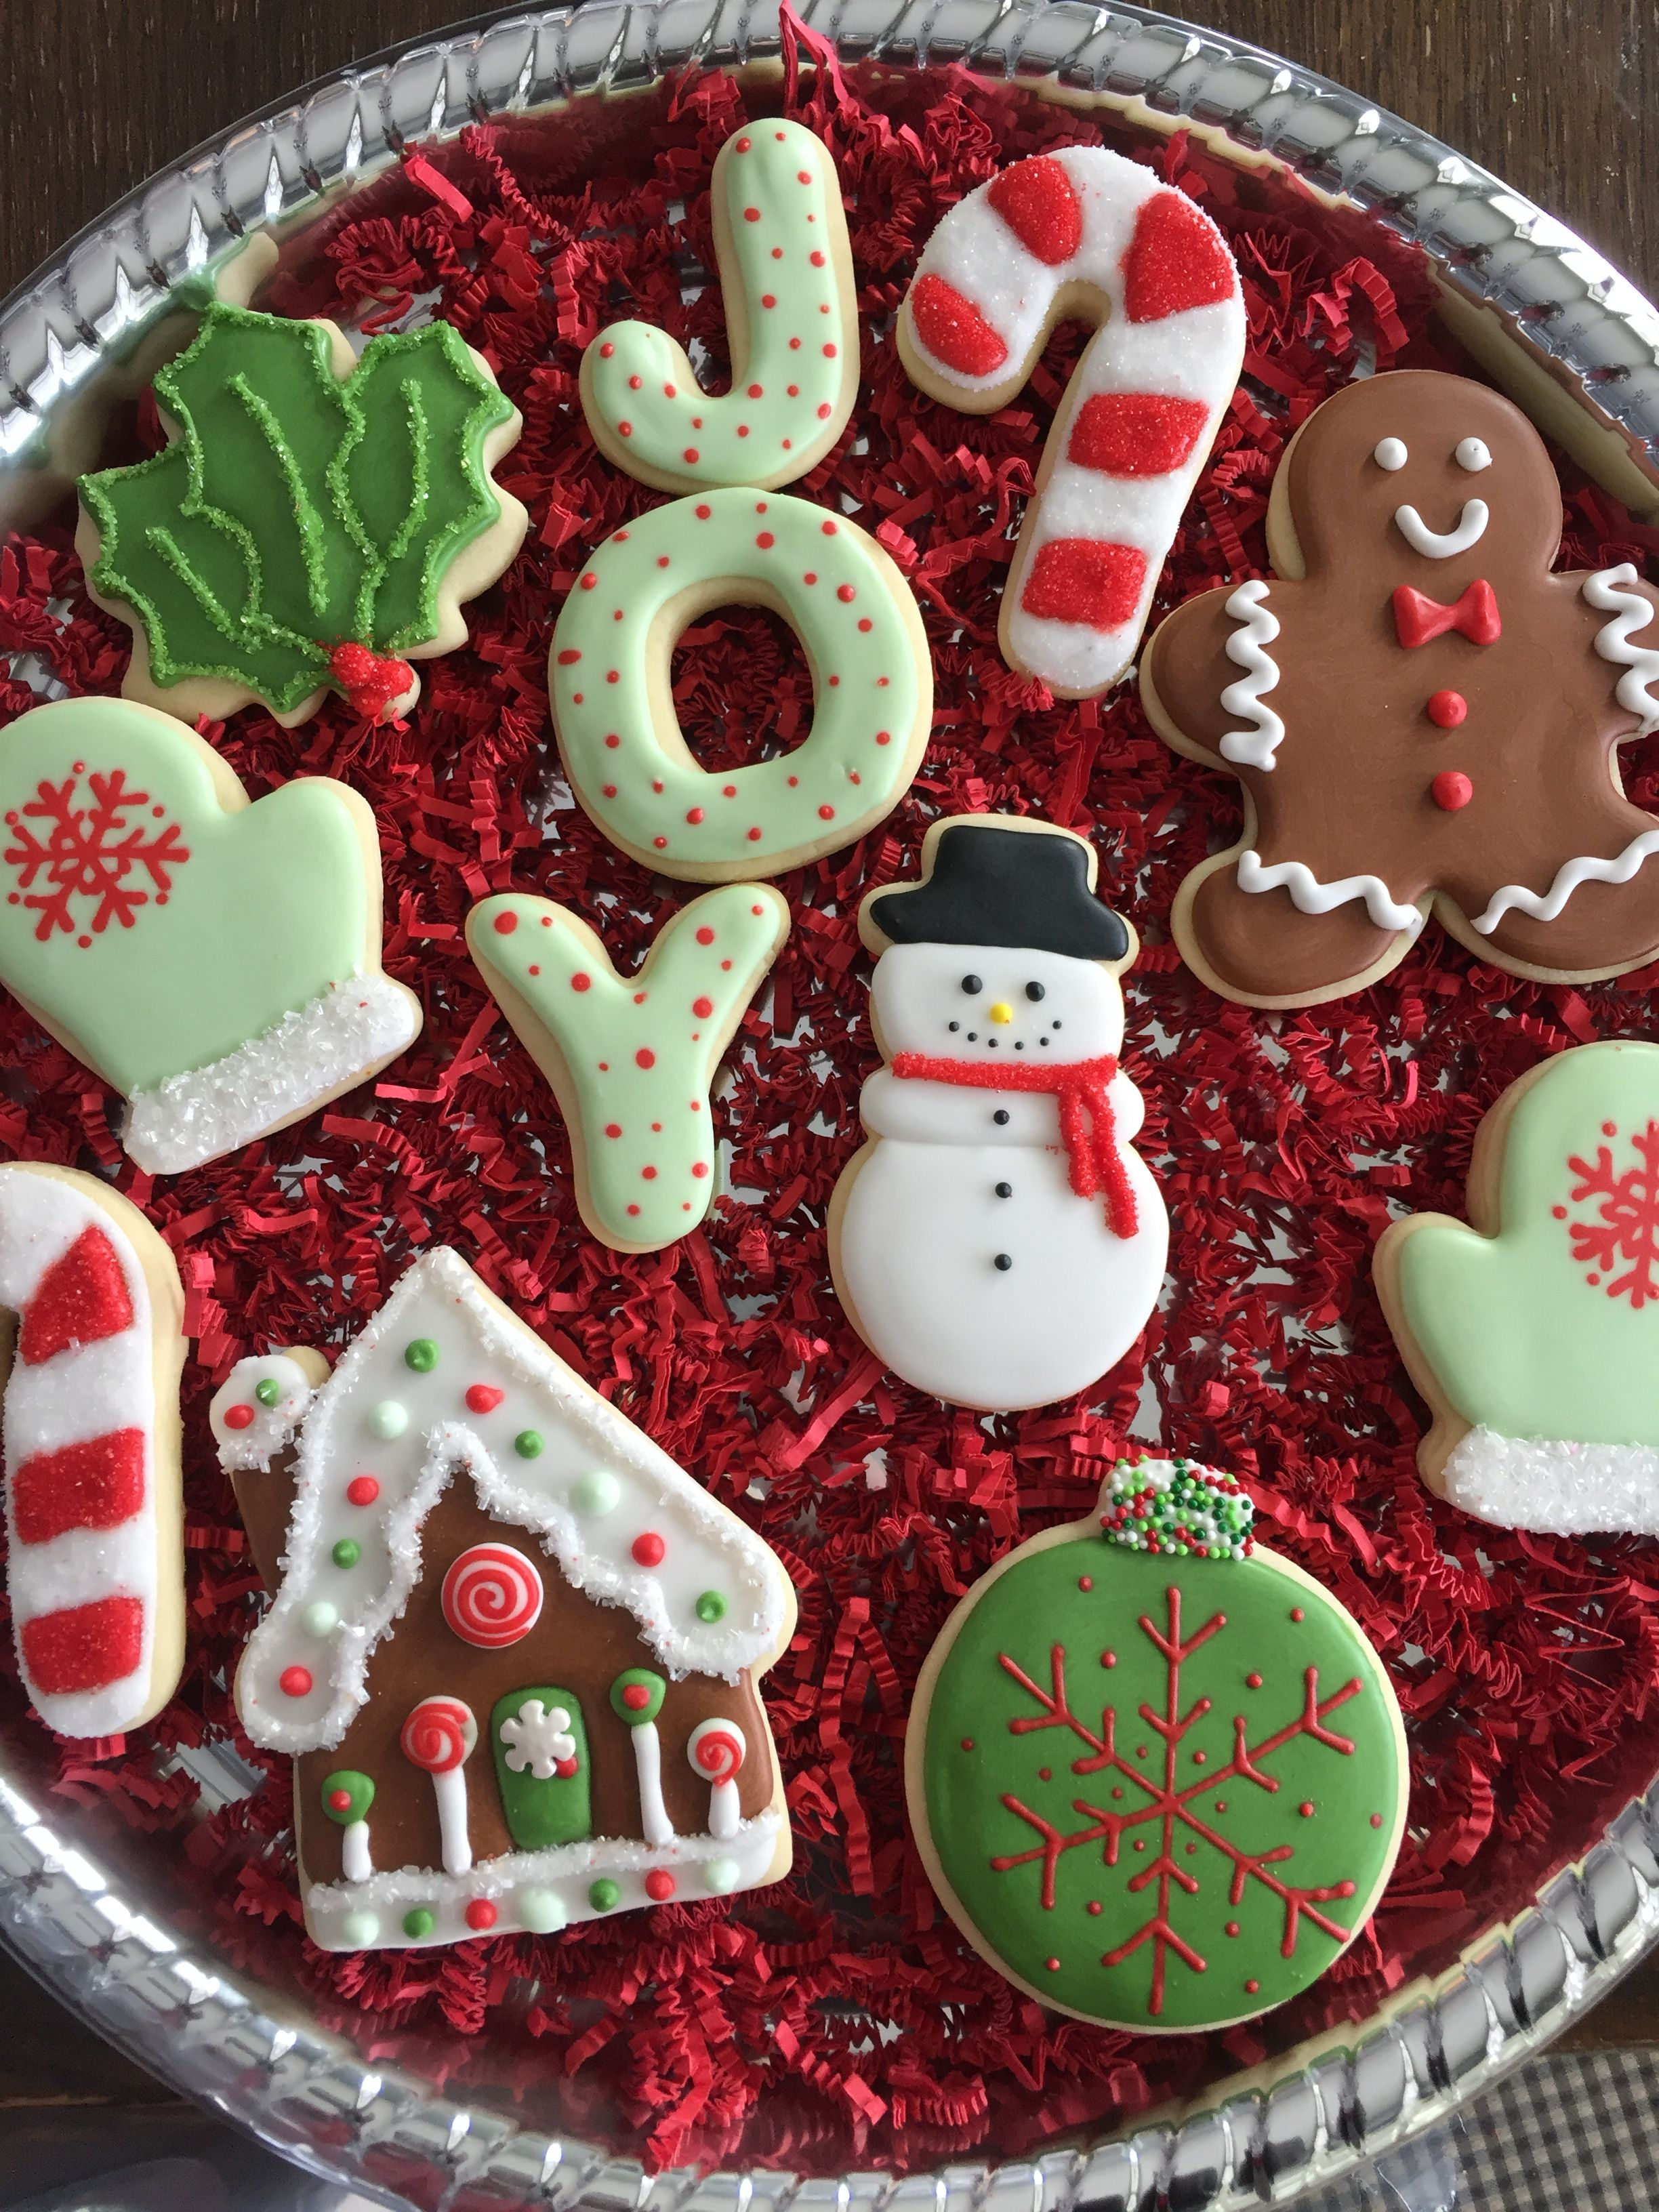 Frosting For Christmas Cookies.Joy Christmas Cookie Tray Royal Icing My Cakes And